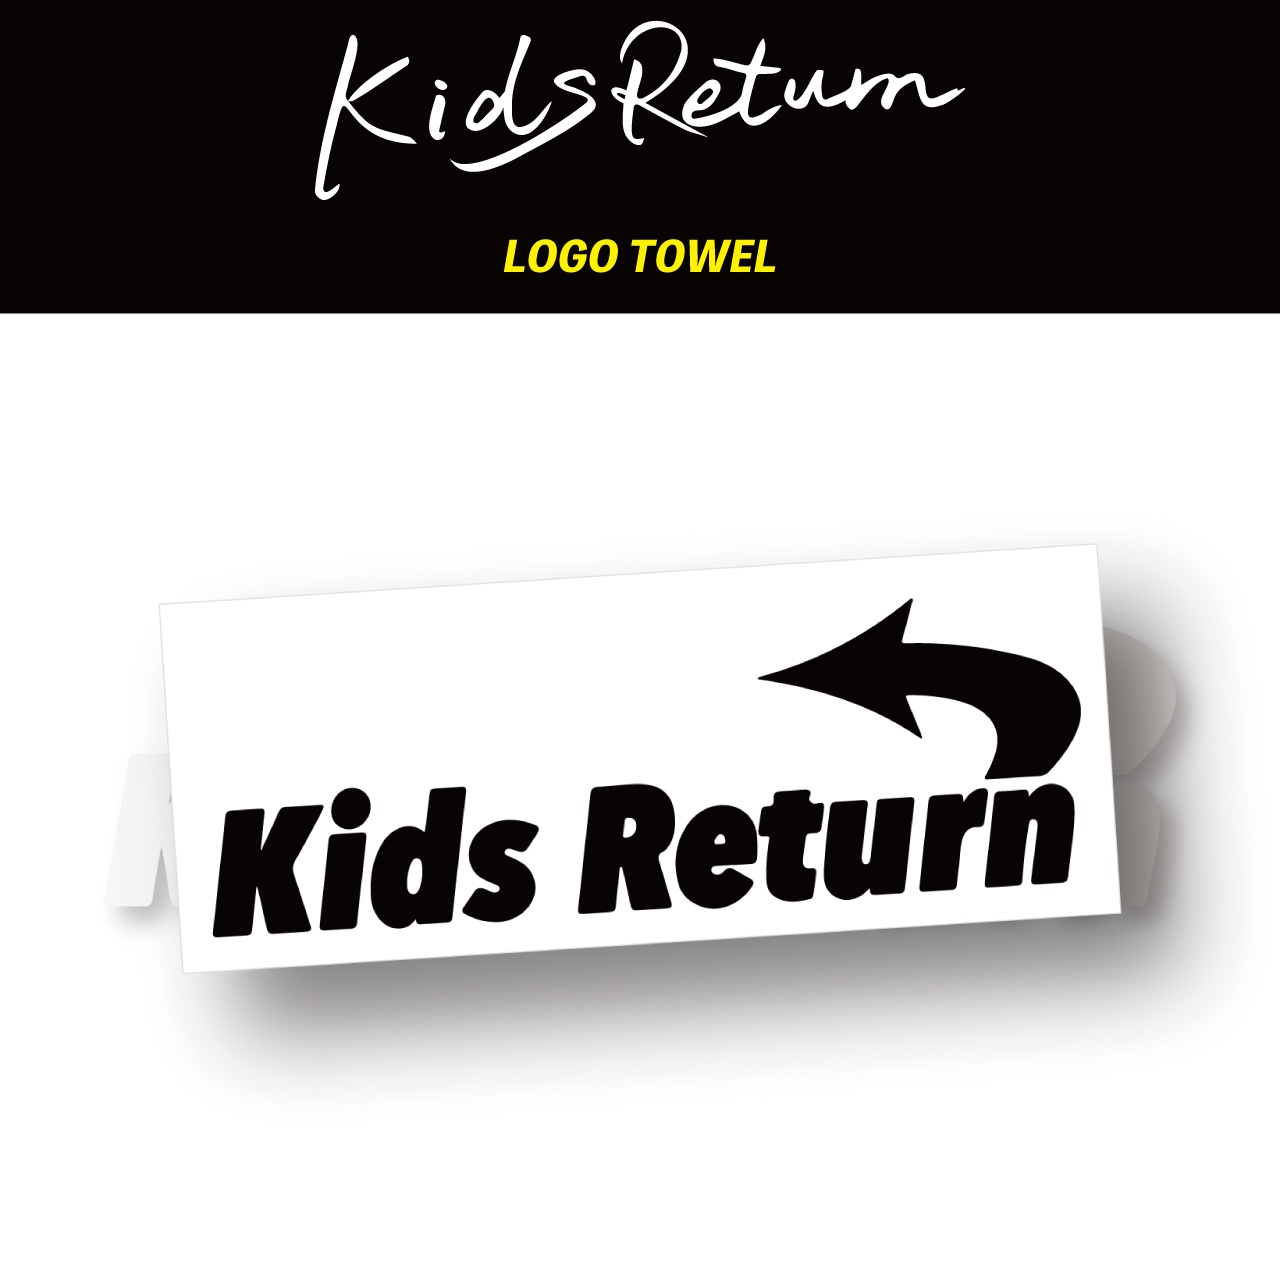 Kids Return LOGO TOWEL